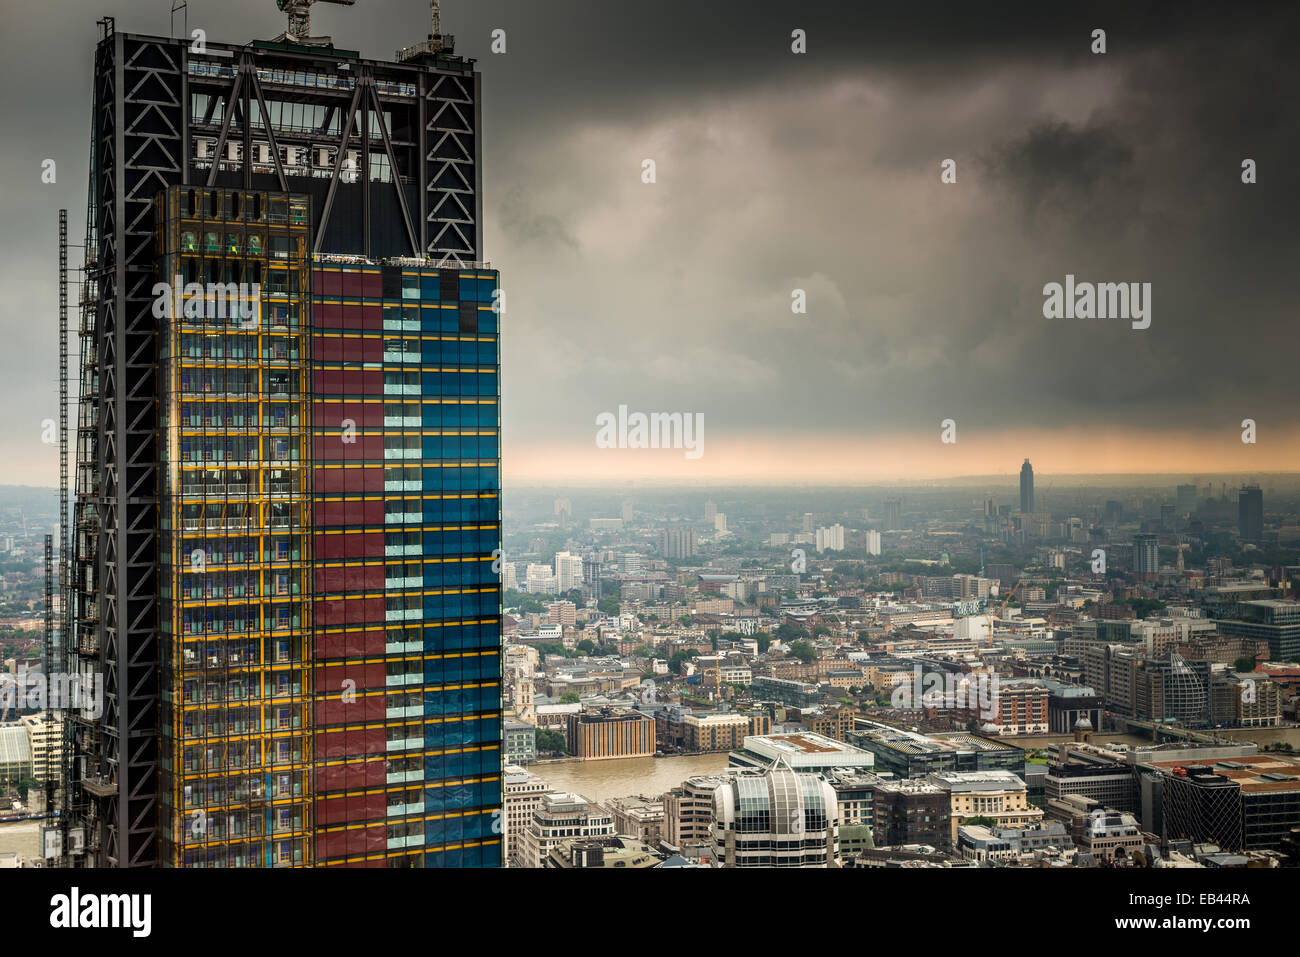 Cheesegrater under construction (122 Leadenhall Street) shot from Heron Tower - Stock Image